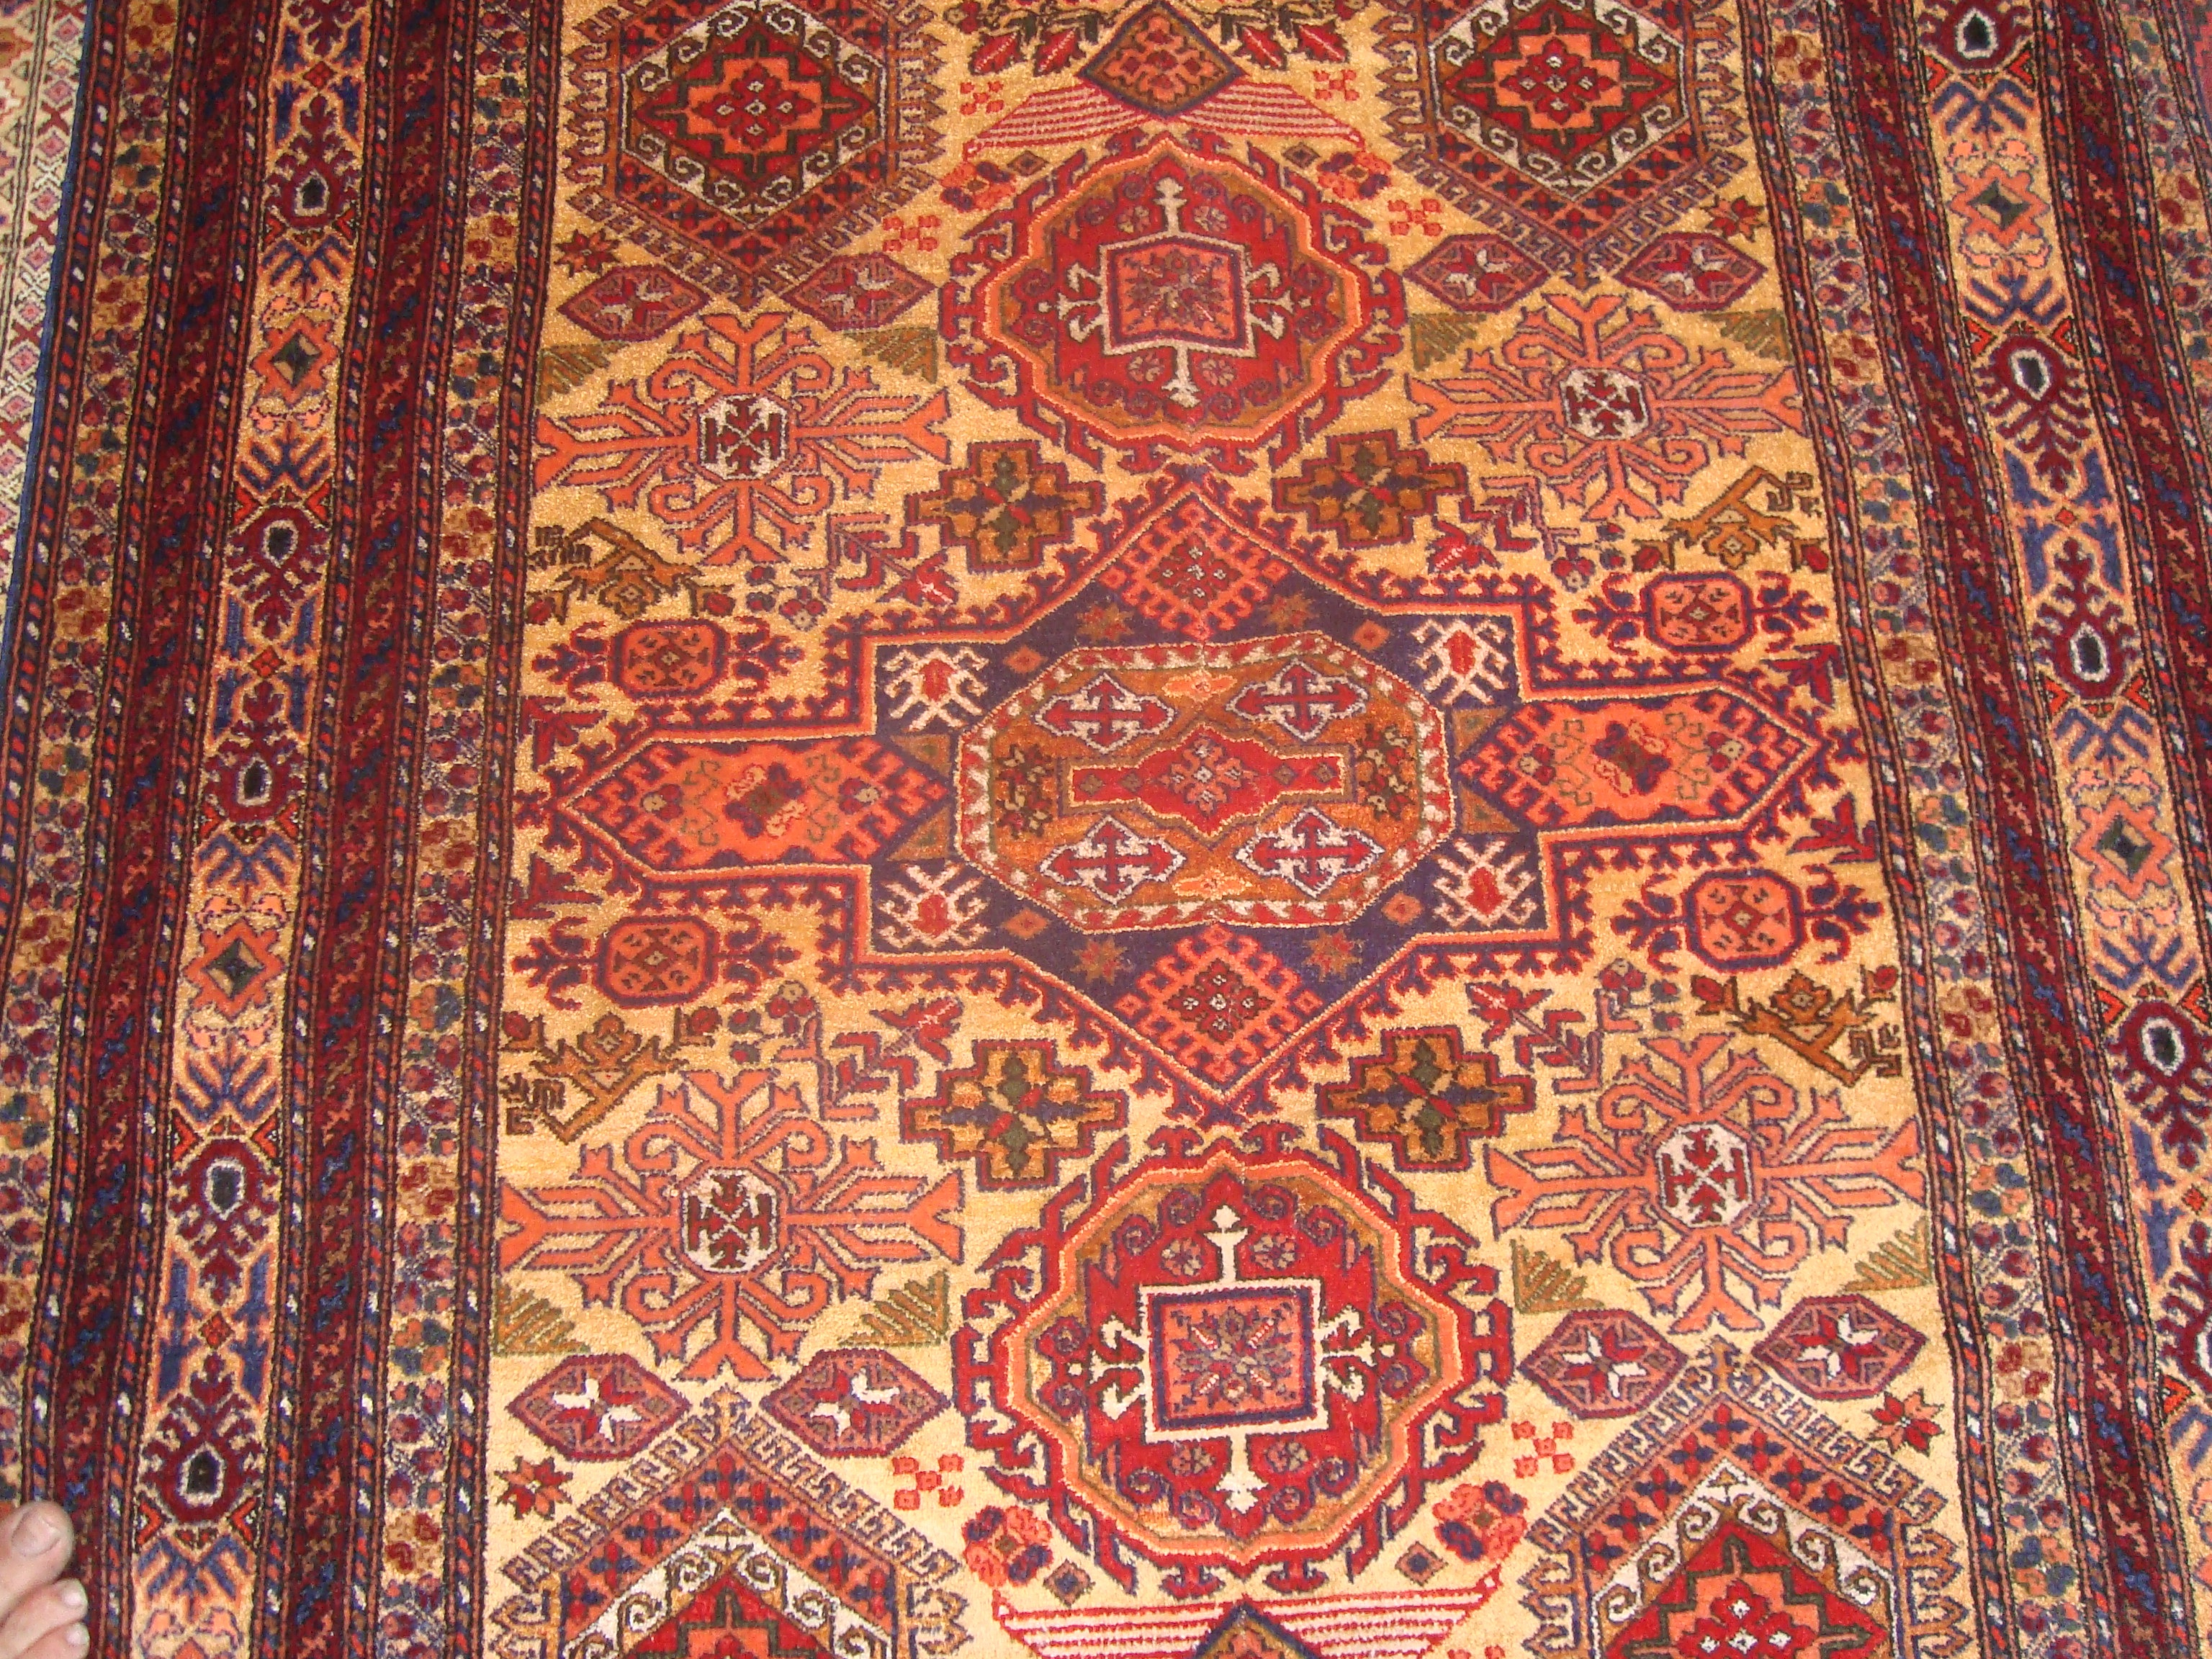 Carpets of Afghanistan